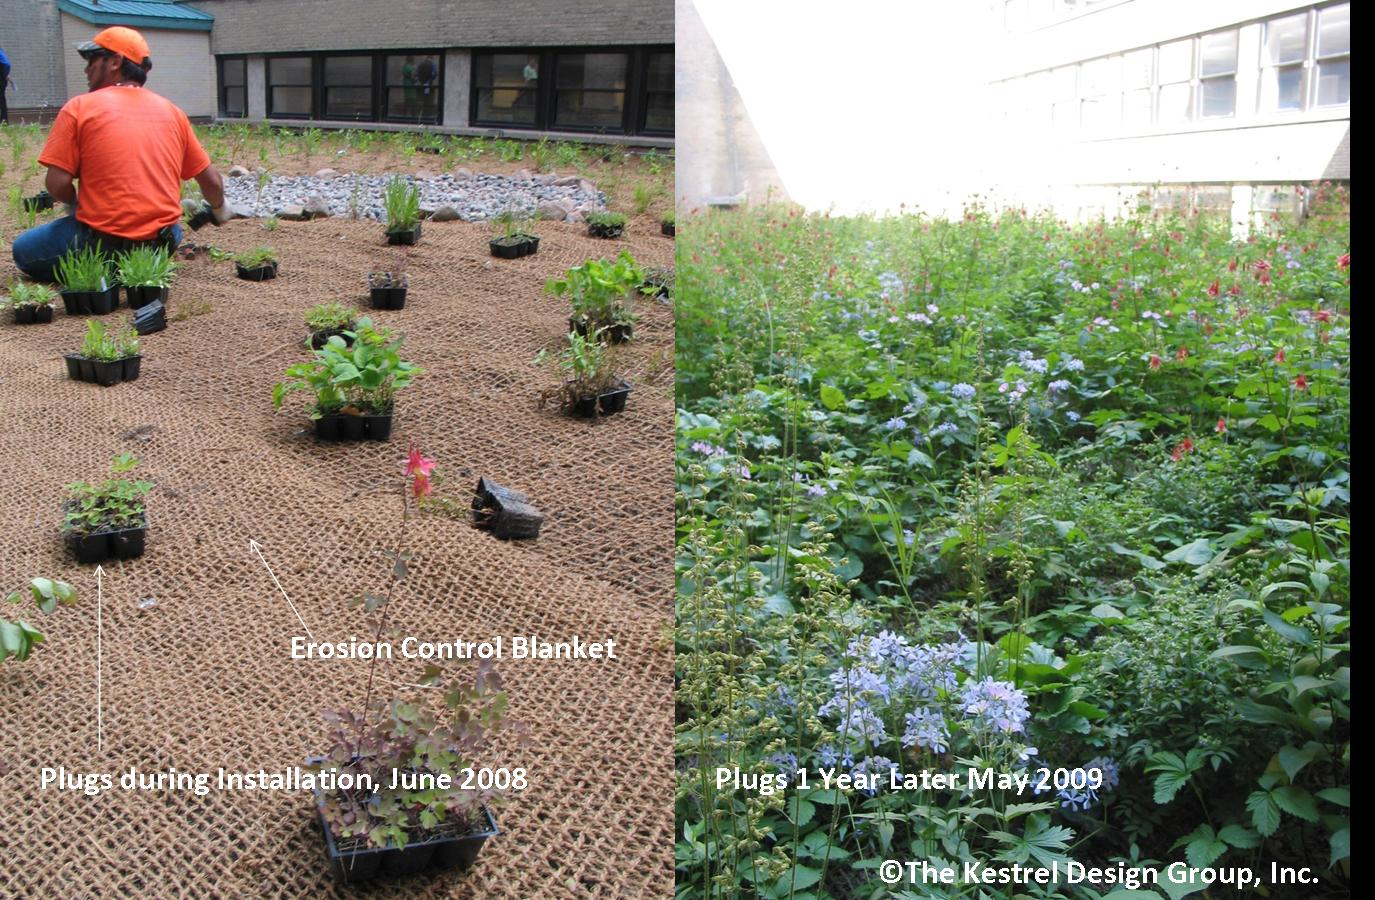 Design criteria for green roofs - Minnesota Stormwater Manual